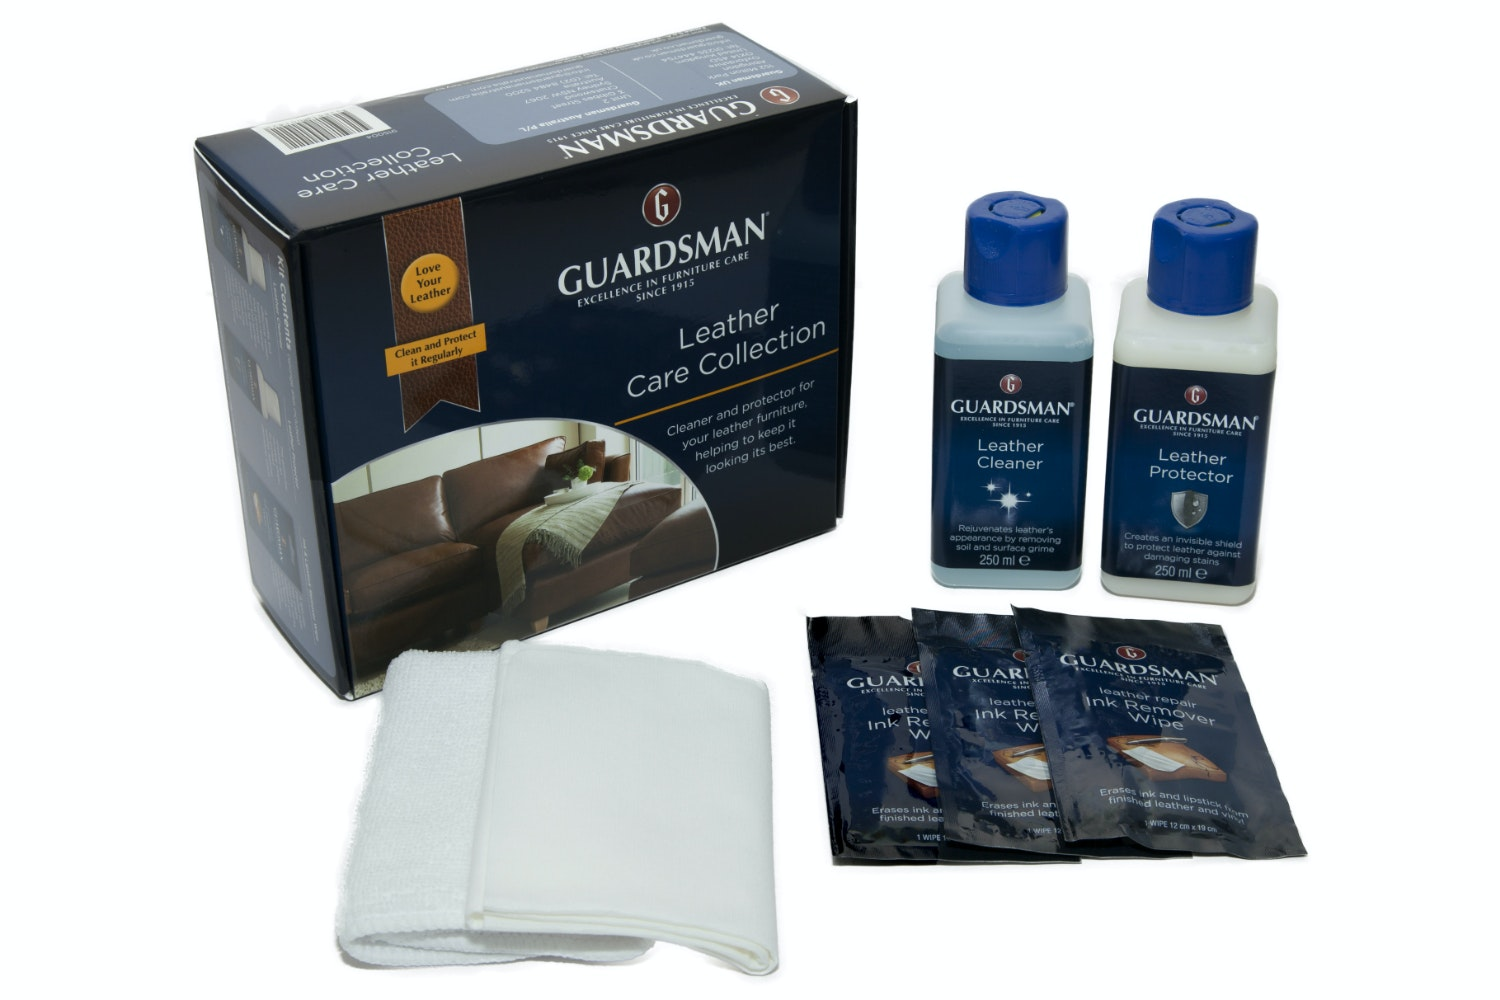 Guardsman Leather Care Collection